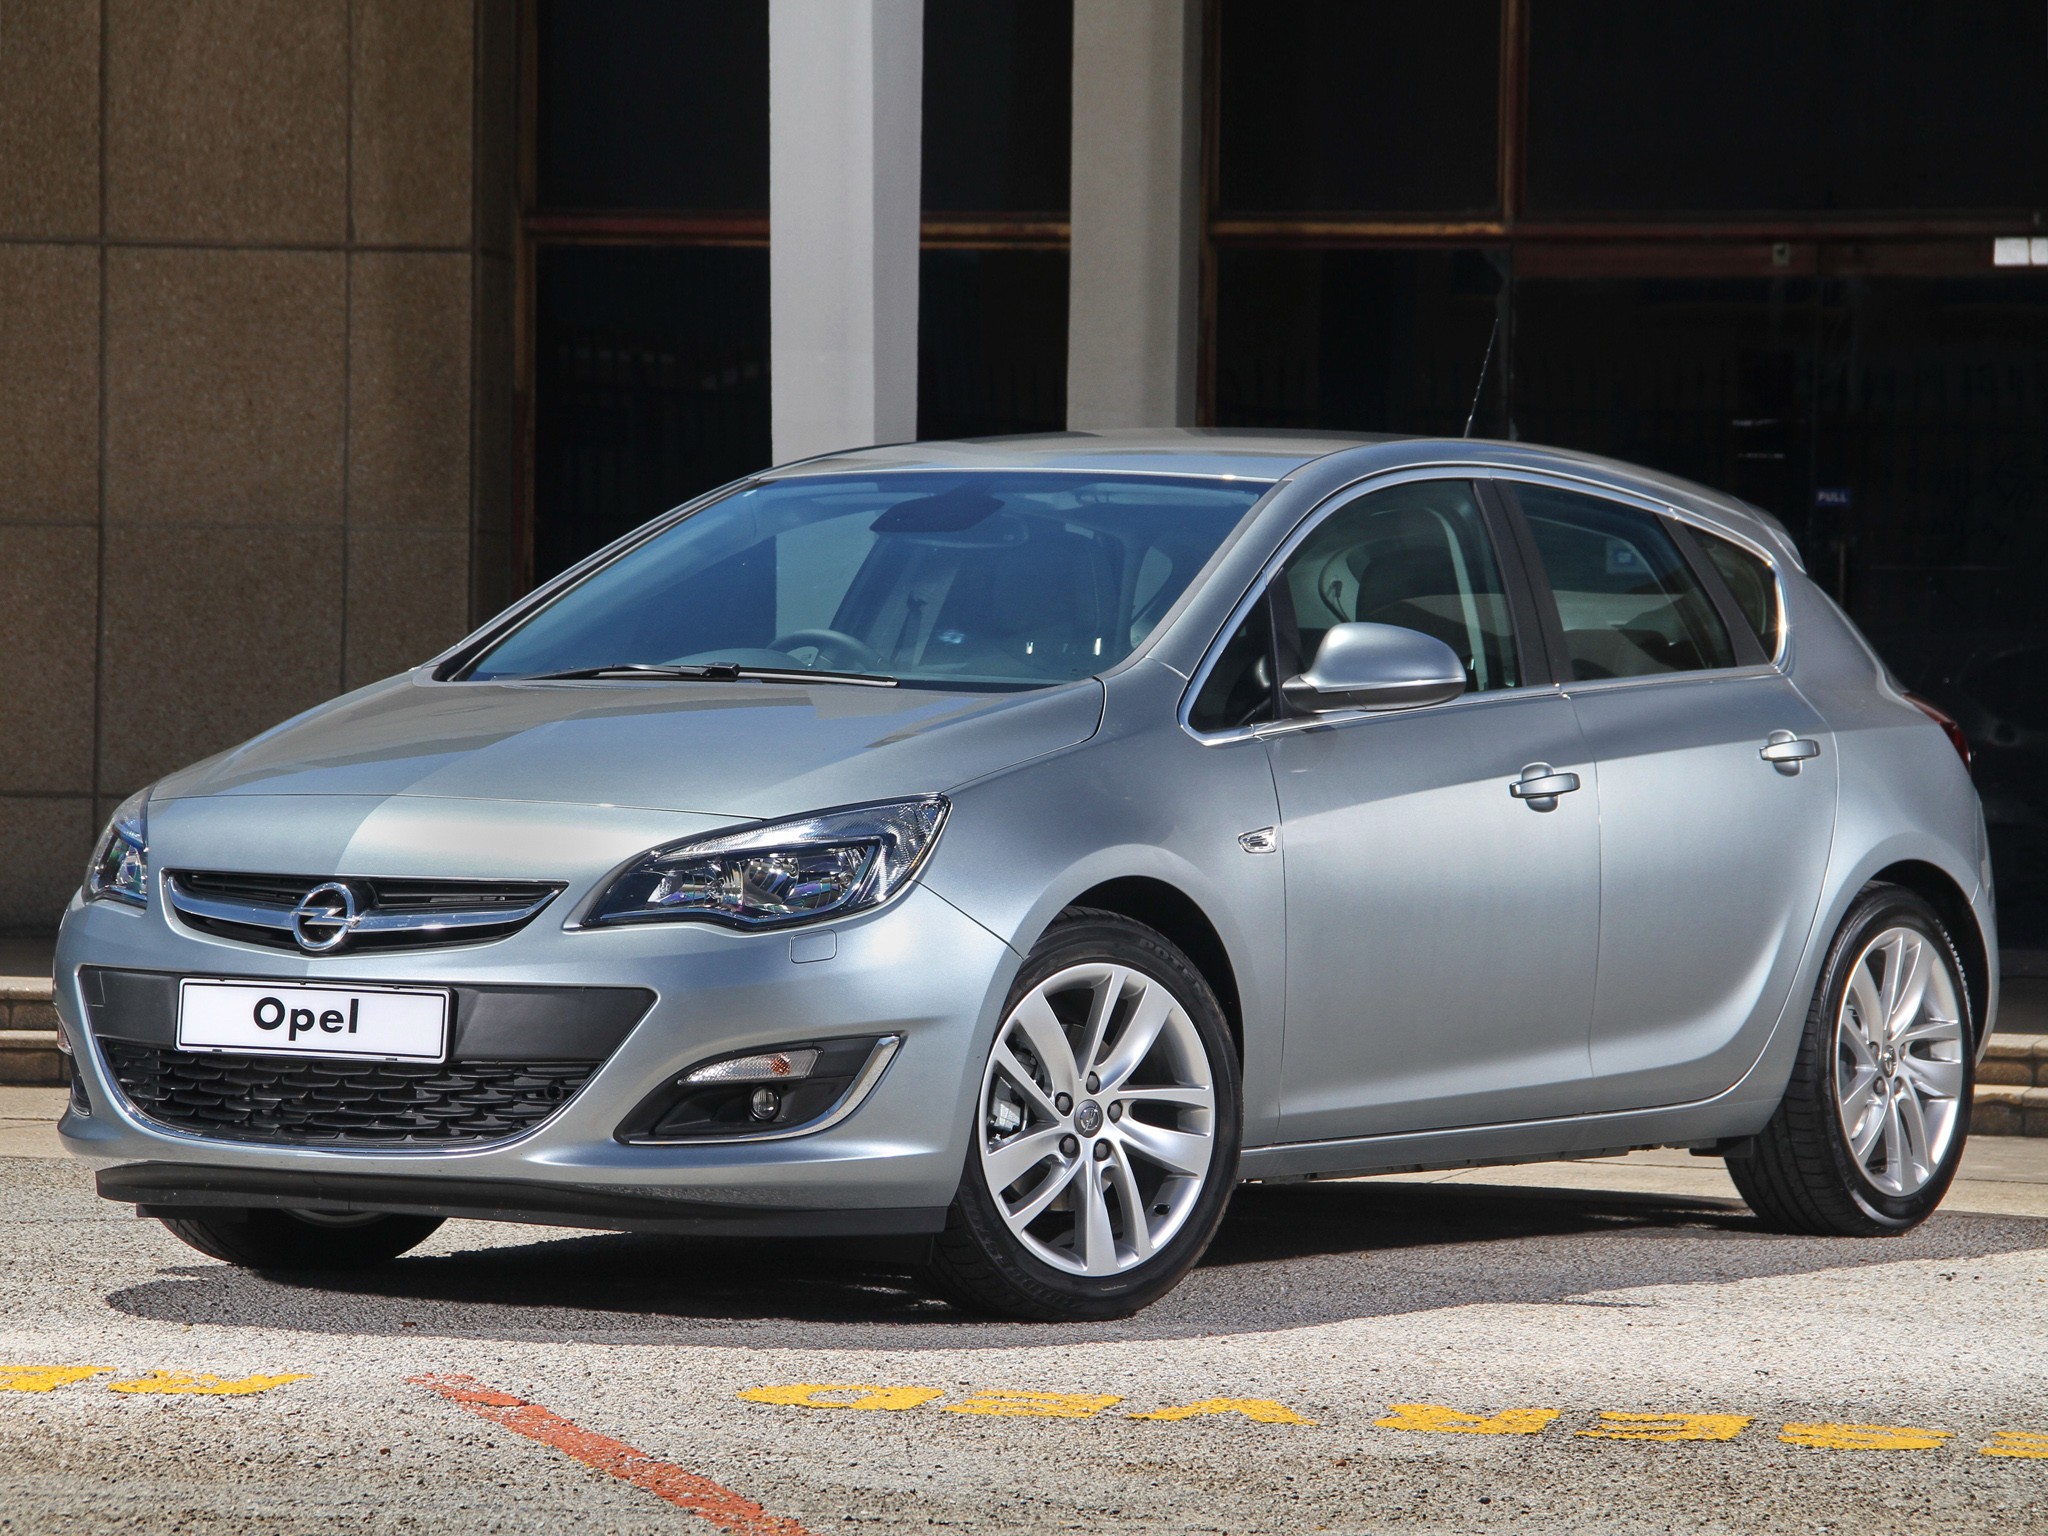 Opel Astra 1.2 2013 photo - 5